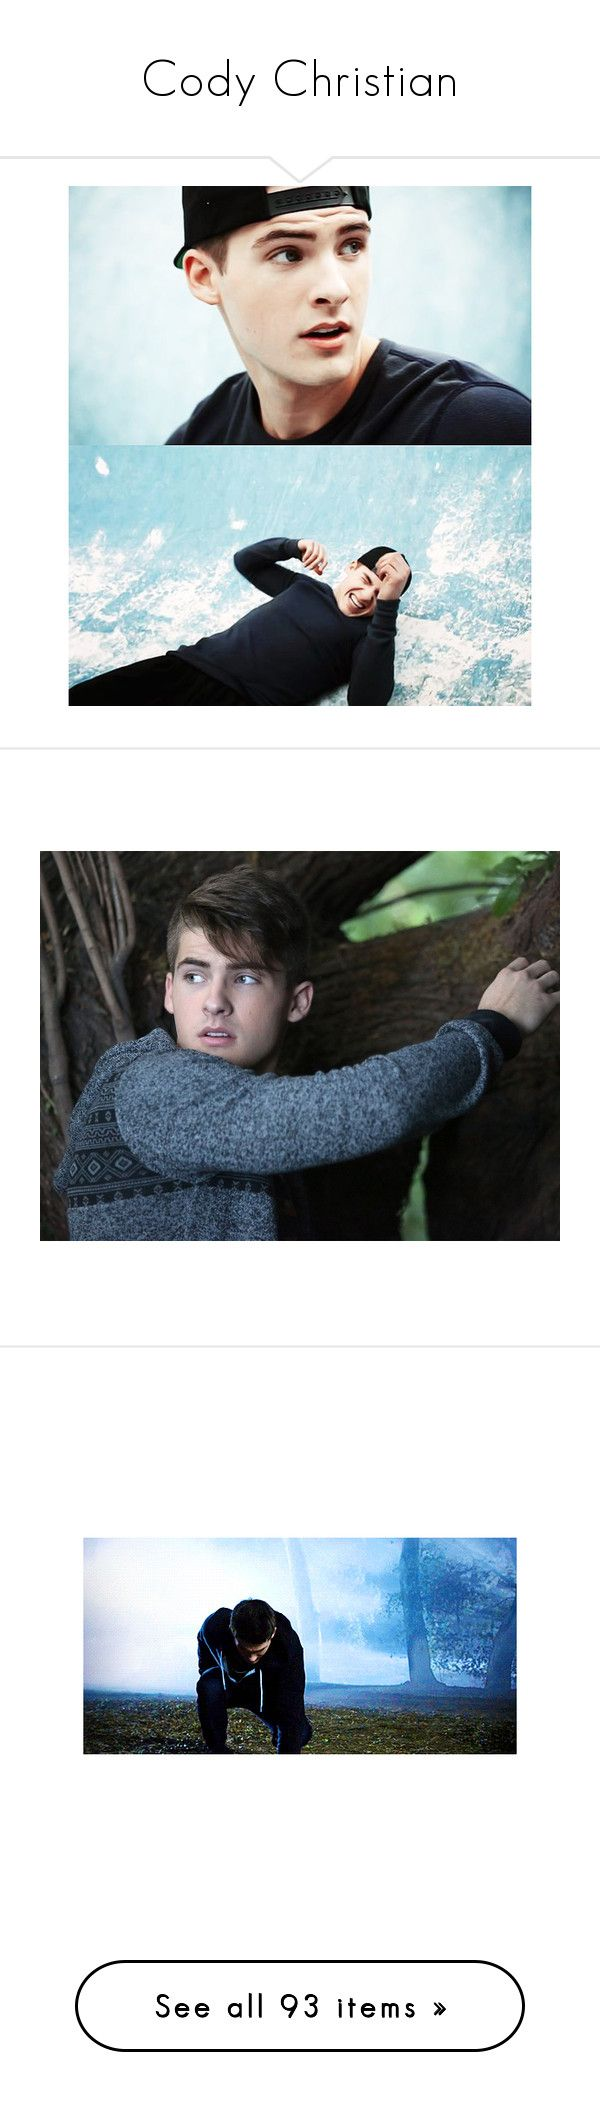 """""""Cody Christian"""" by heymisstm ❤ liked on Polyvore featuring cody christian, home, home decor, star home decor, wall art, inspirational home decor, teen wolf, pictures, dog top and tops"""